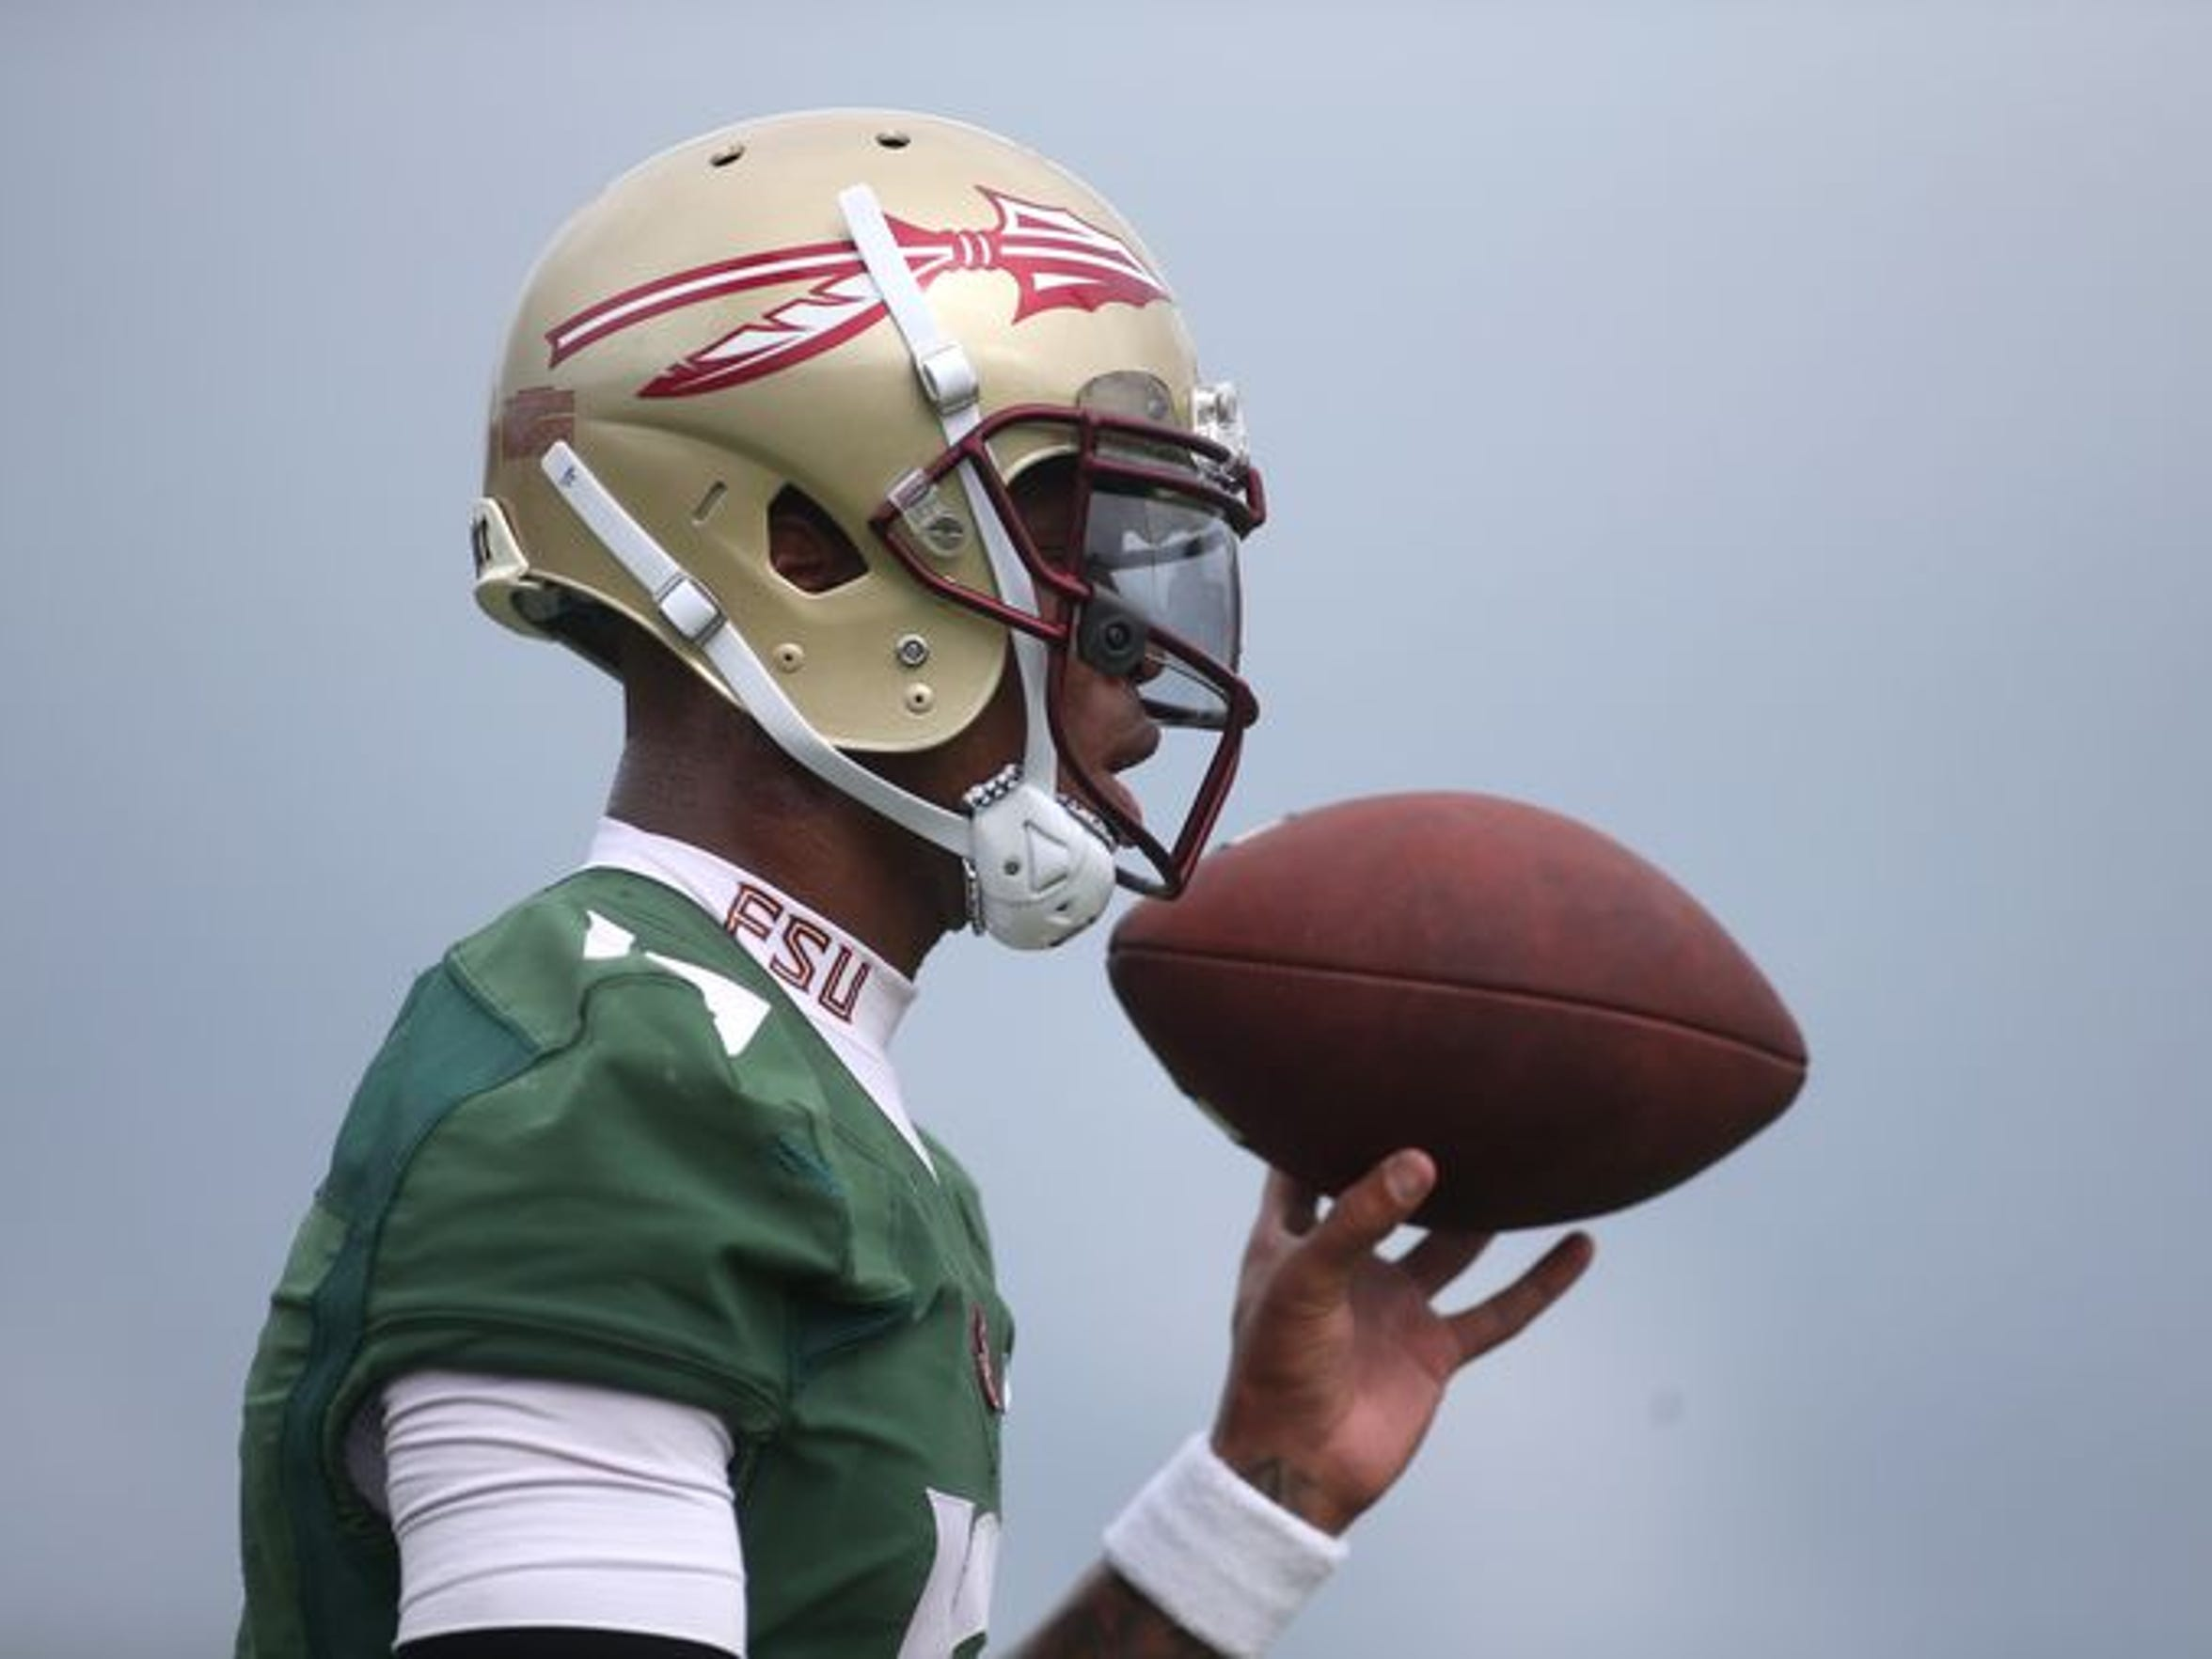 Francois will look to lead FSU to its first College Football Playoff berth since 2014.